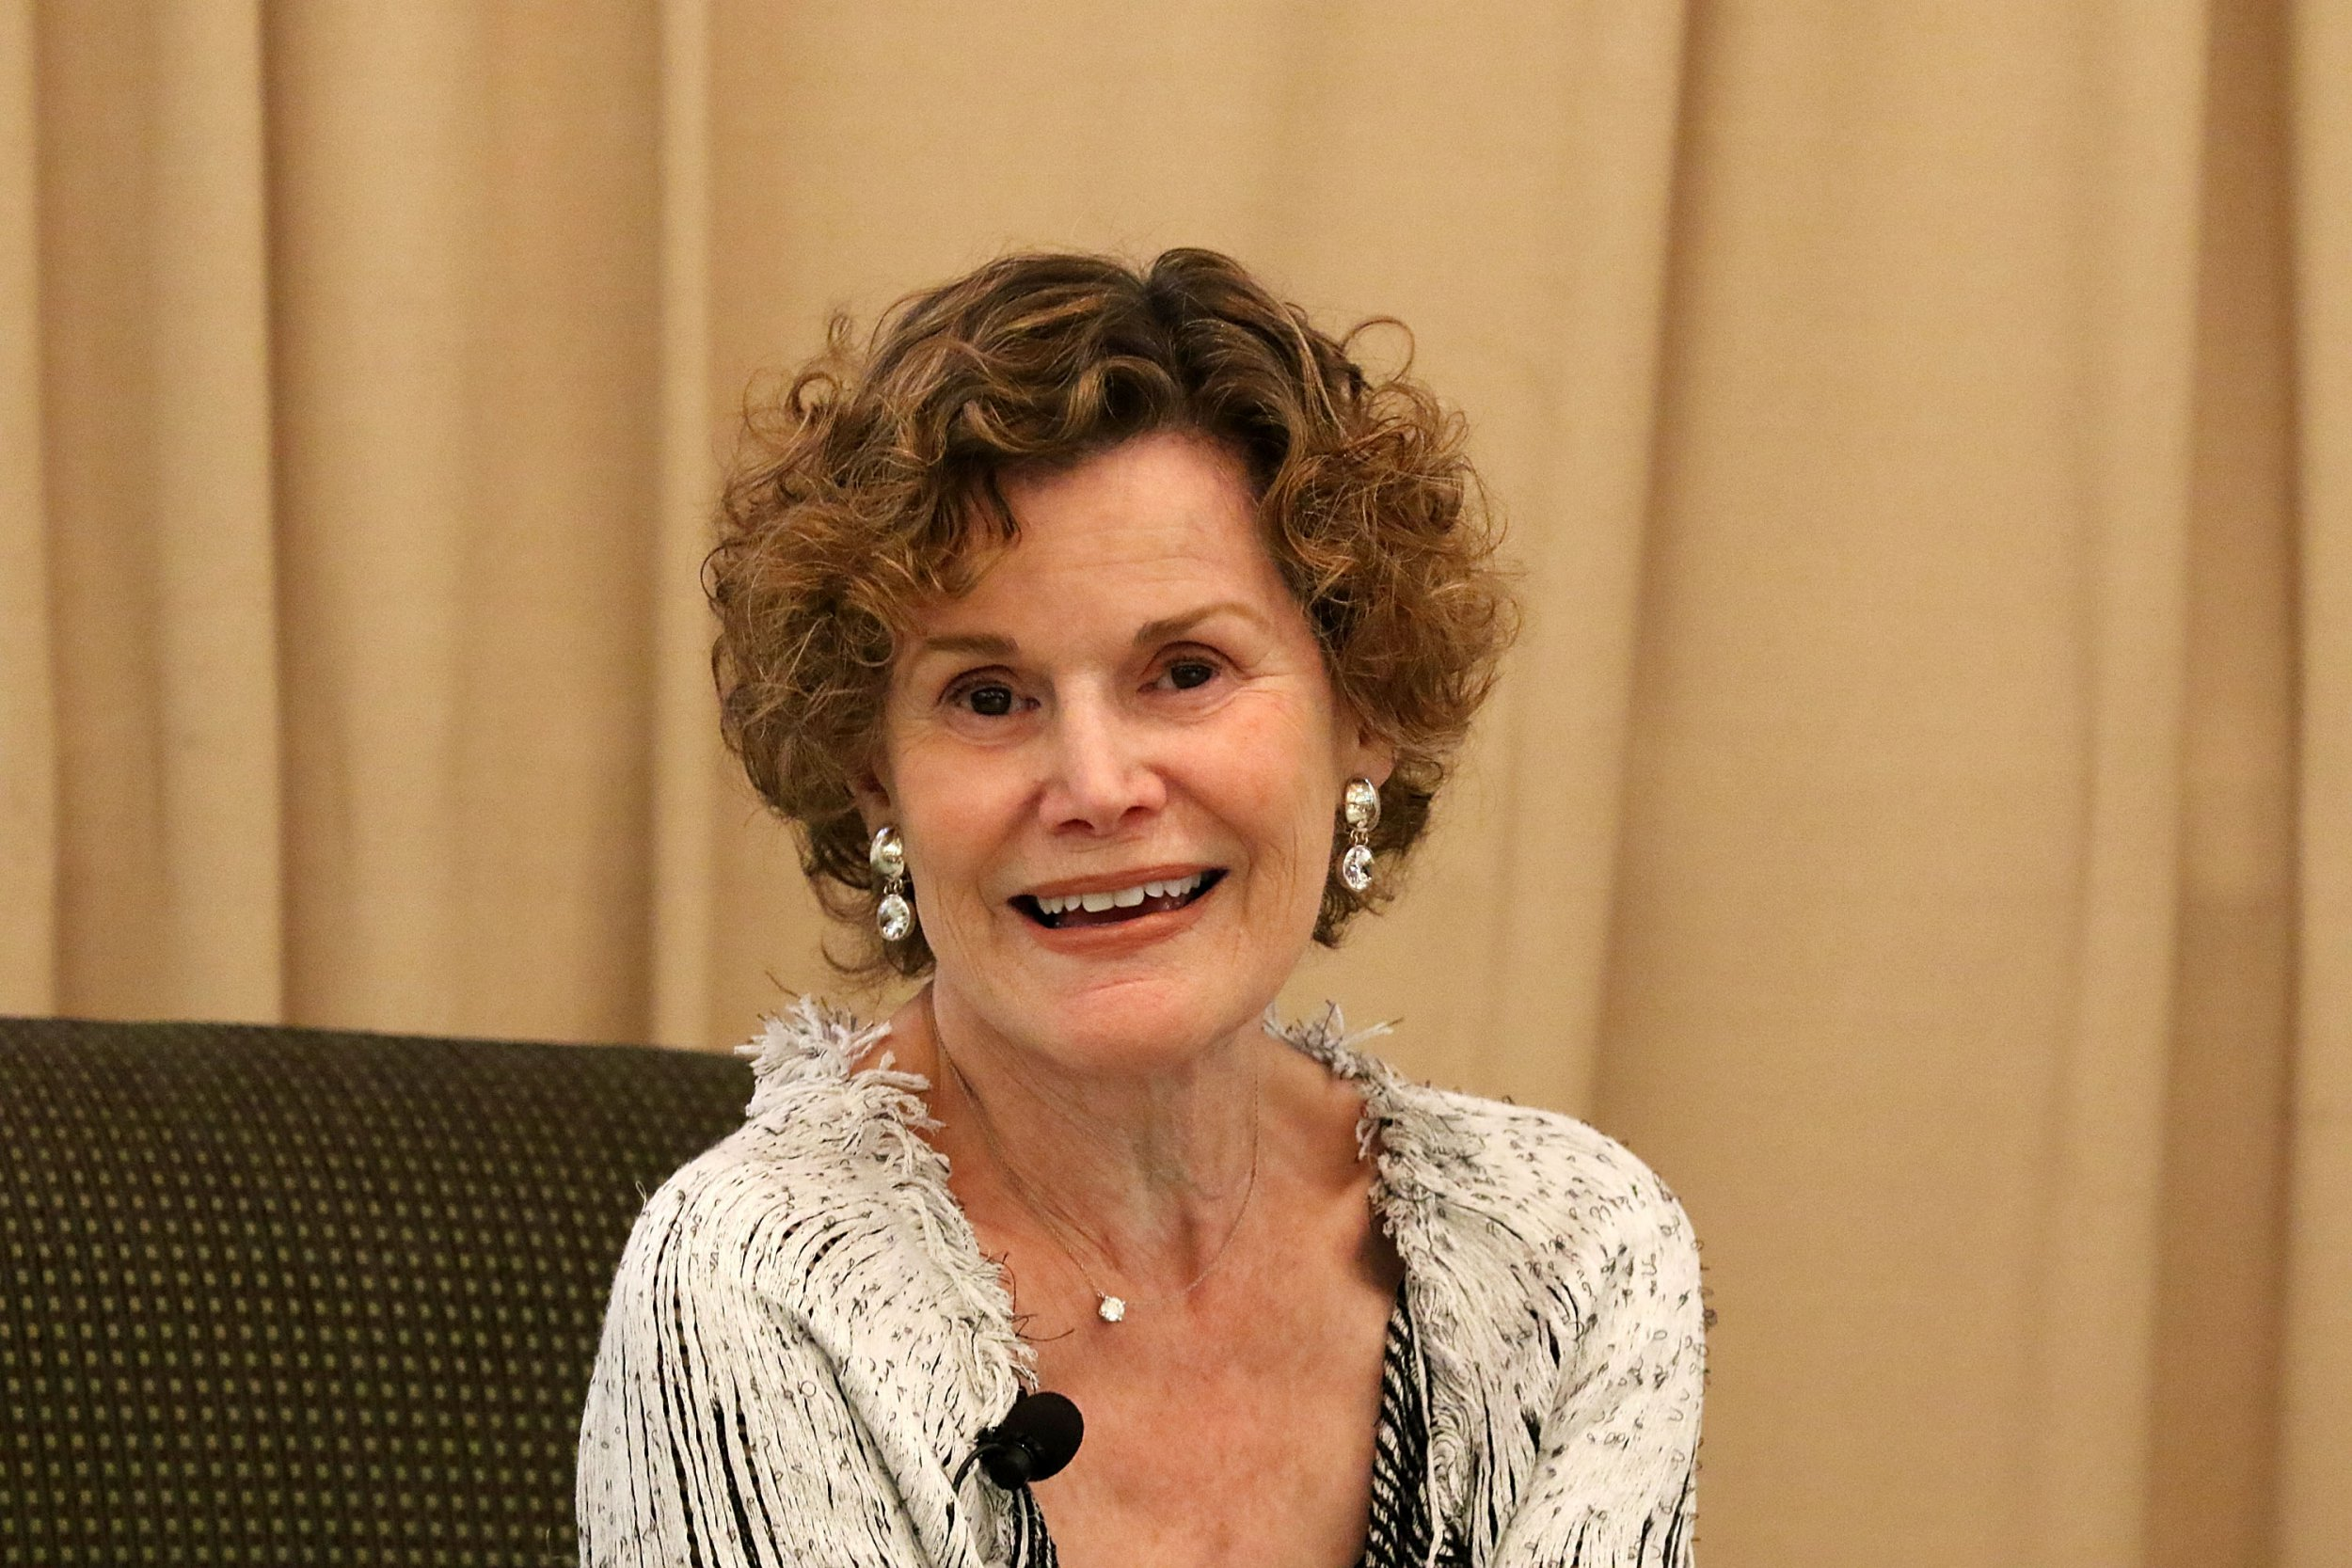 Judy Blume's Are You There God? It's Me, Margaret is getting the film treatment and the excitement is real